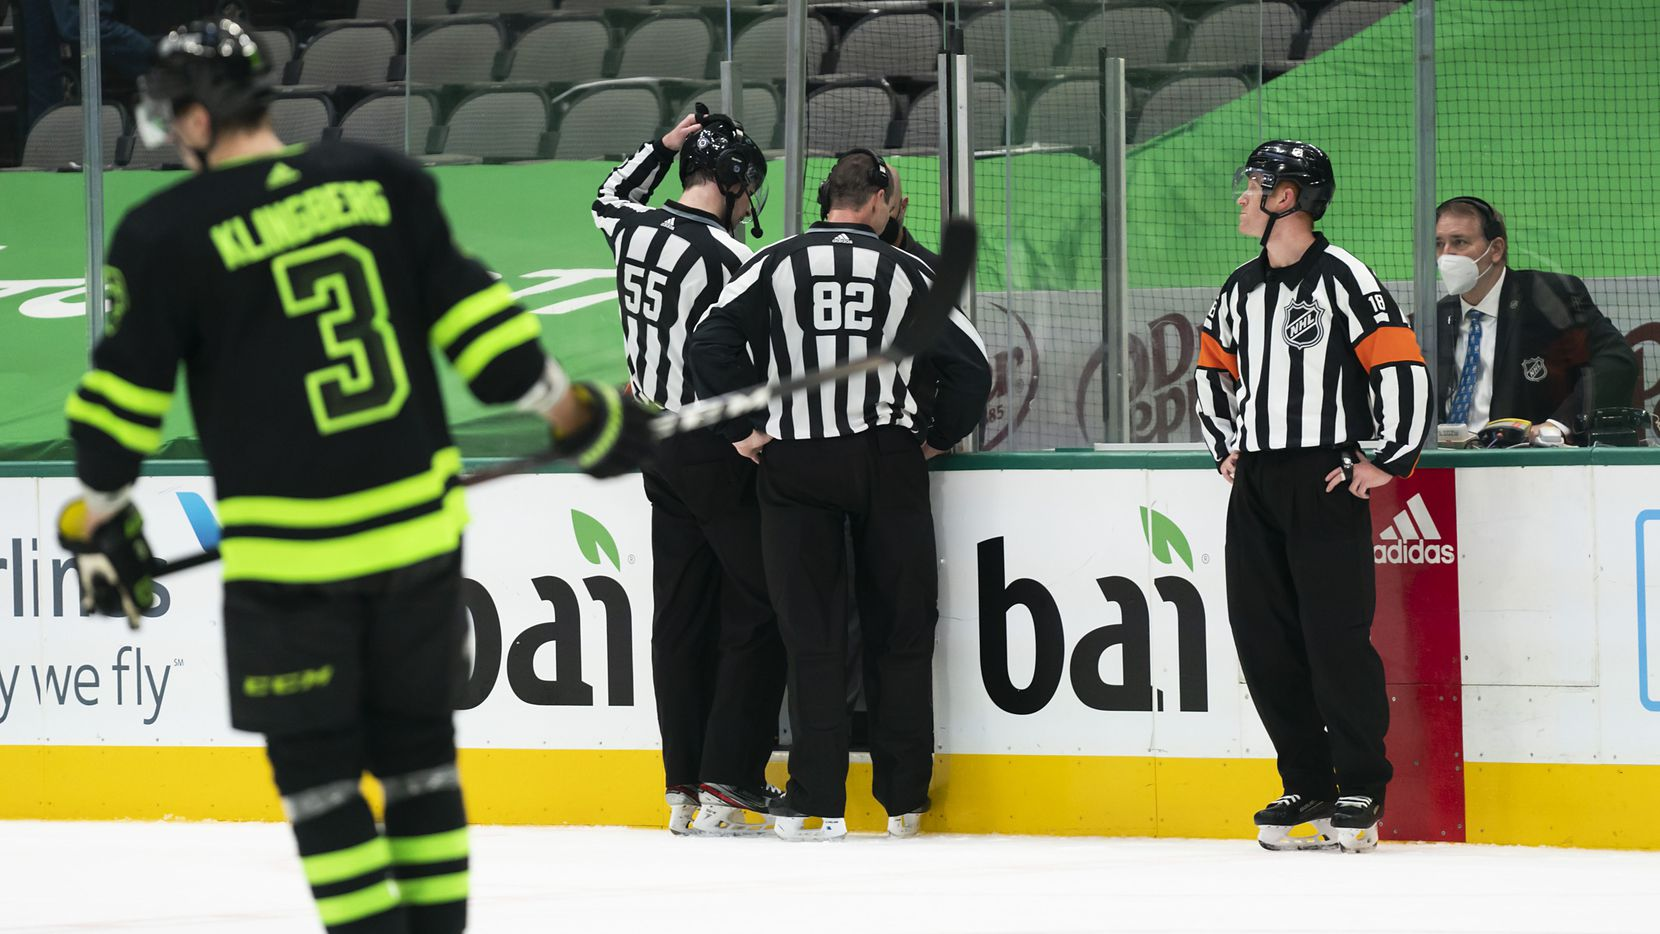 Officials review a goal by Florida Panthers defenseman Aaron Ekblad that was overturned on an offsides call during overtime of an NHL hockey game against the Dallas Stars at the American Airlines Center on Saturday, March 27, 2021, in Dallas.